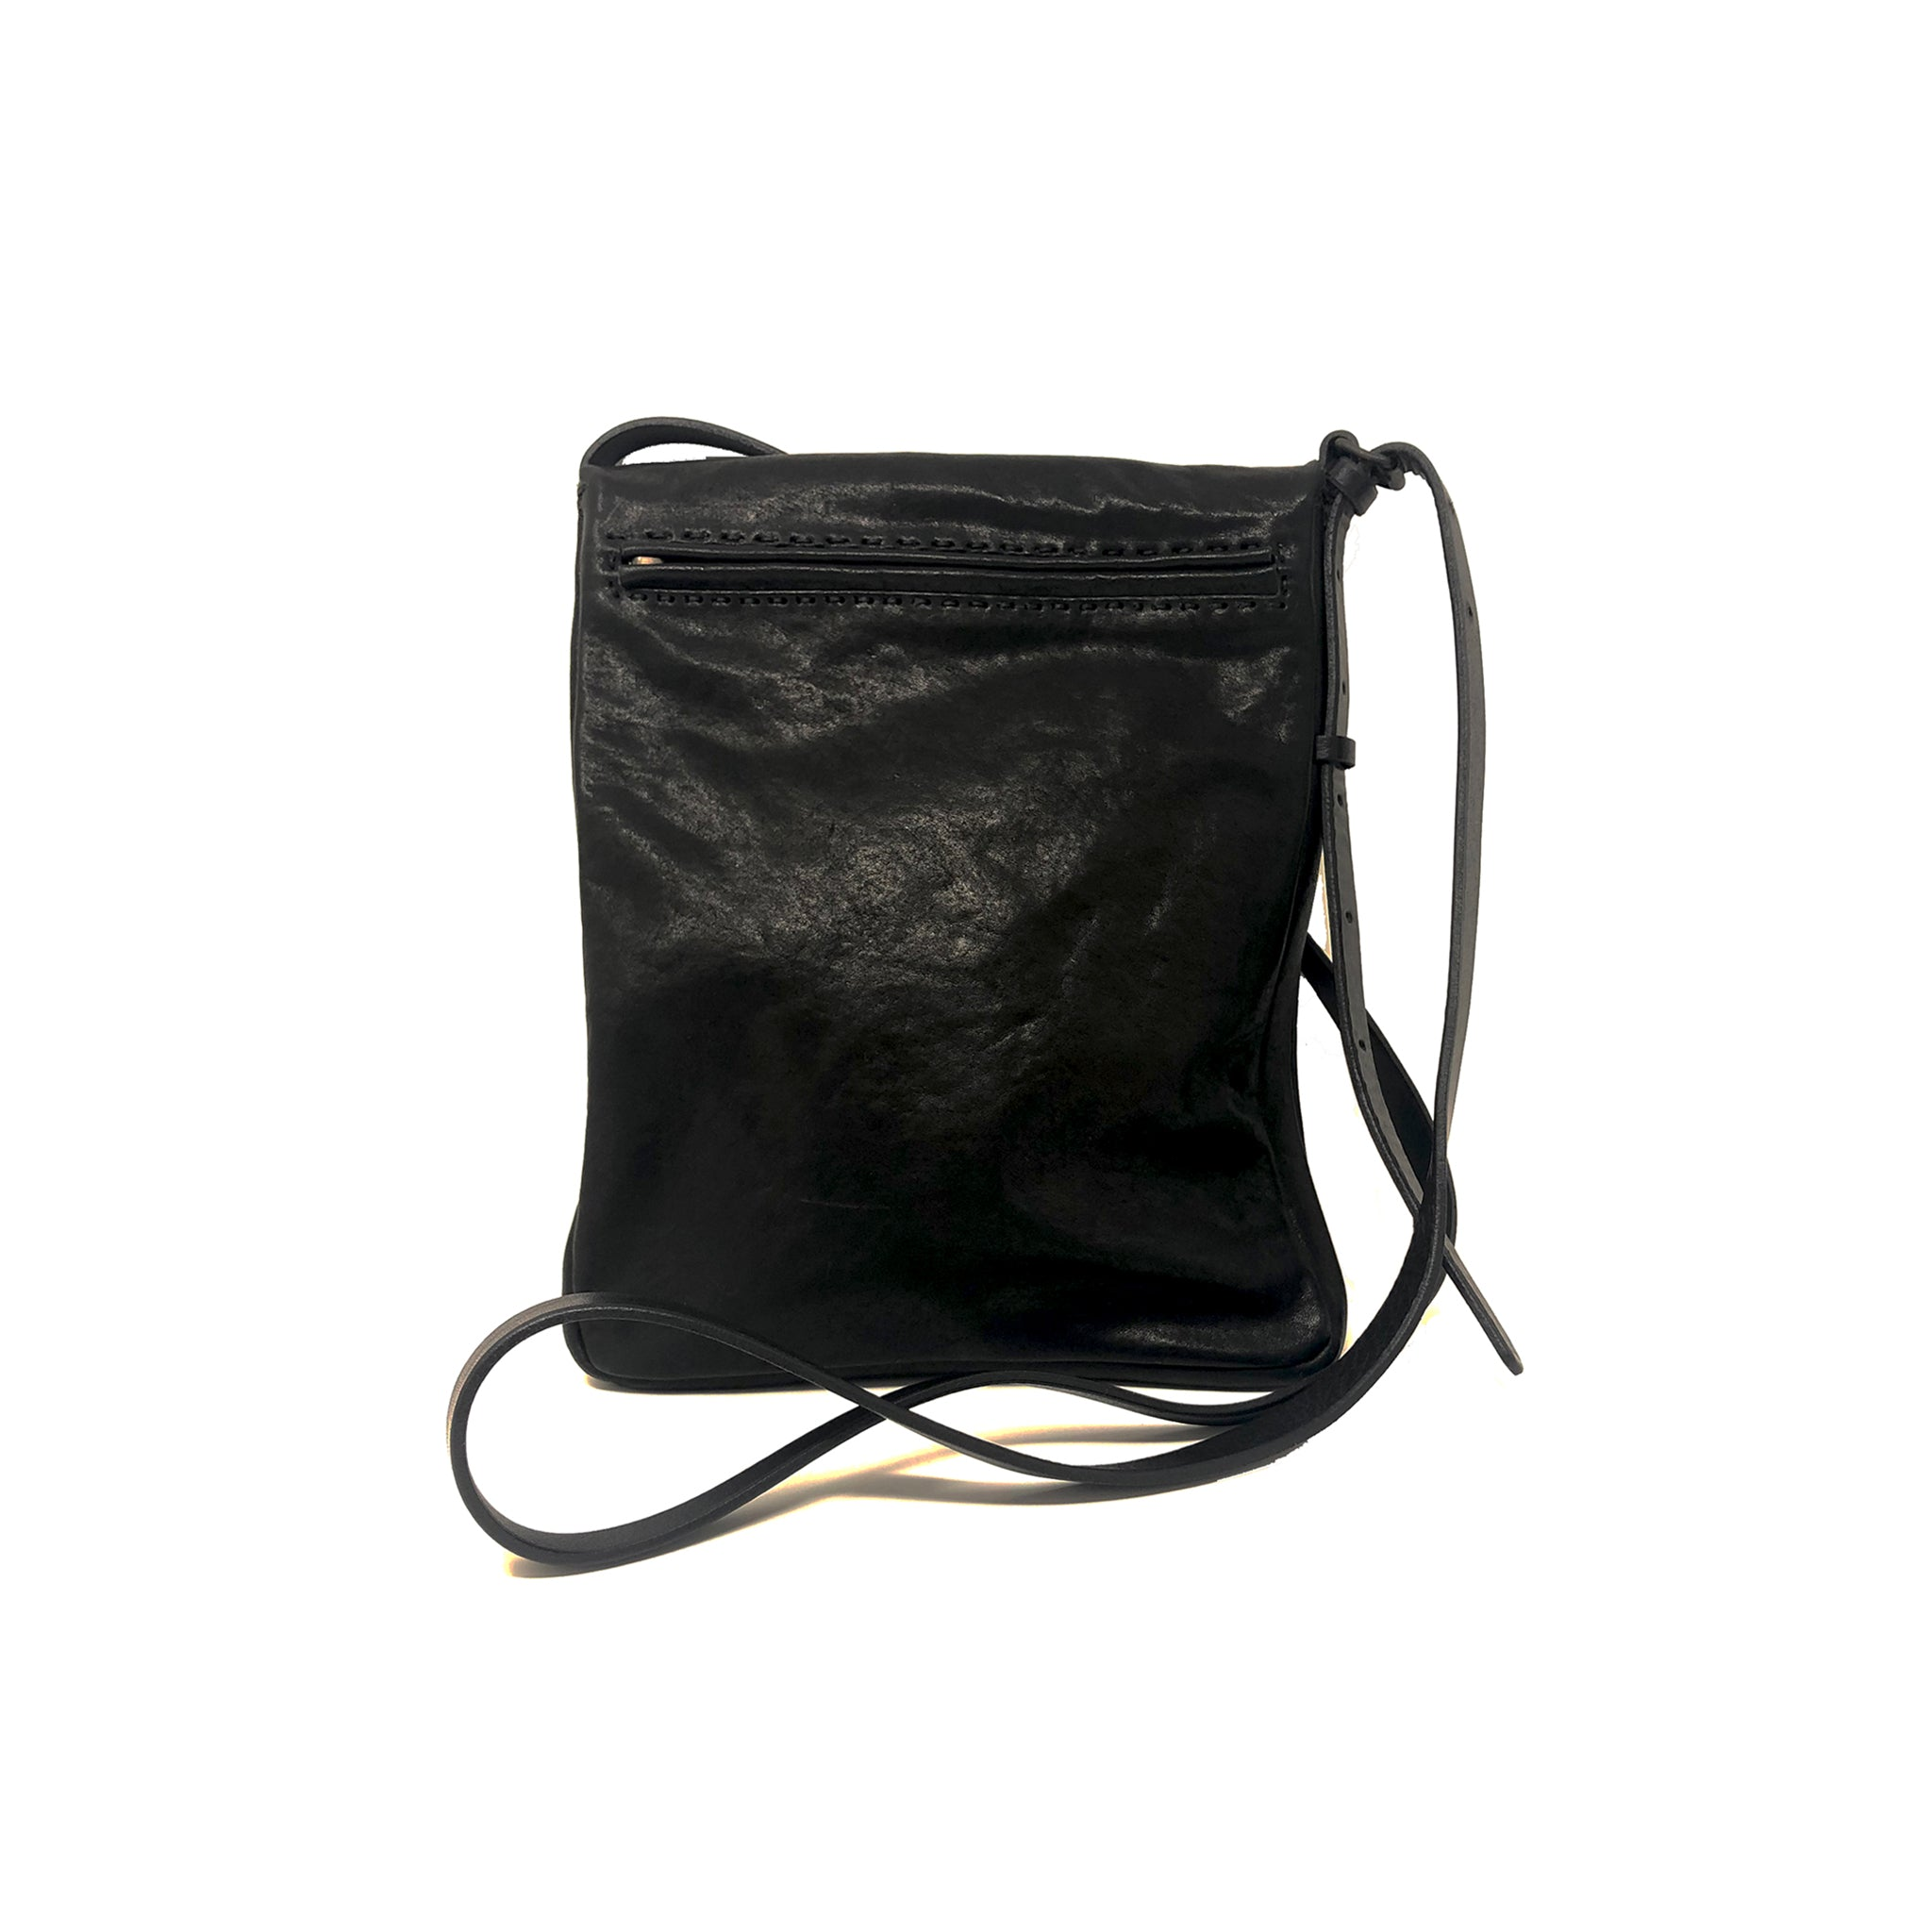 Melbourne Leather Bag